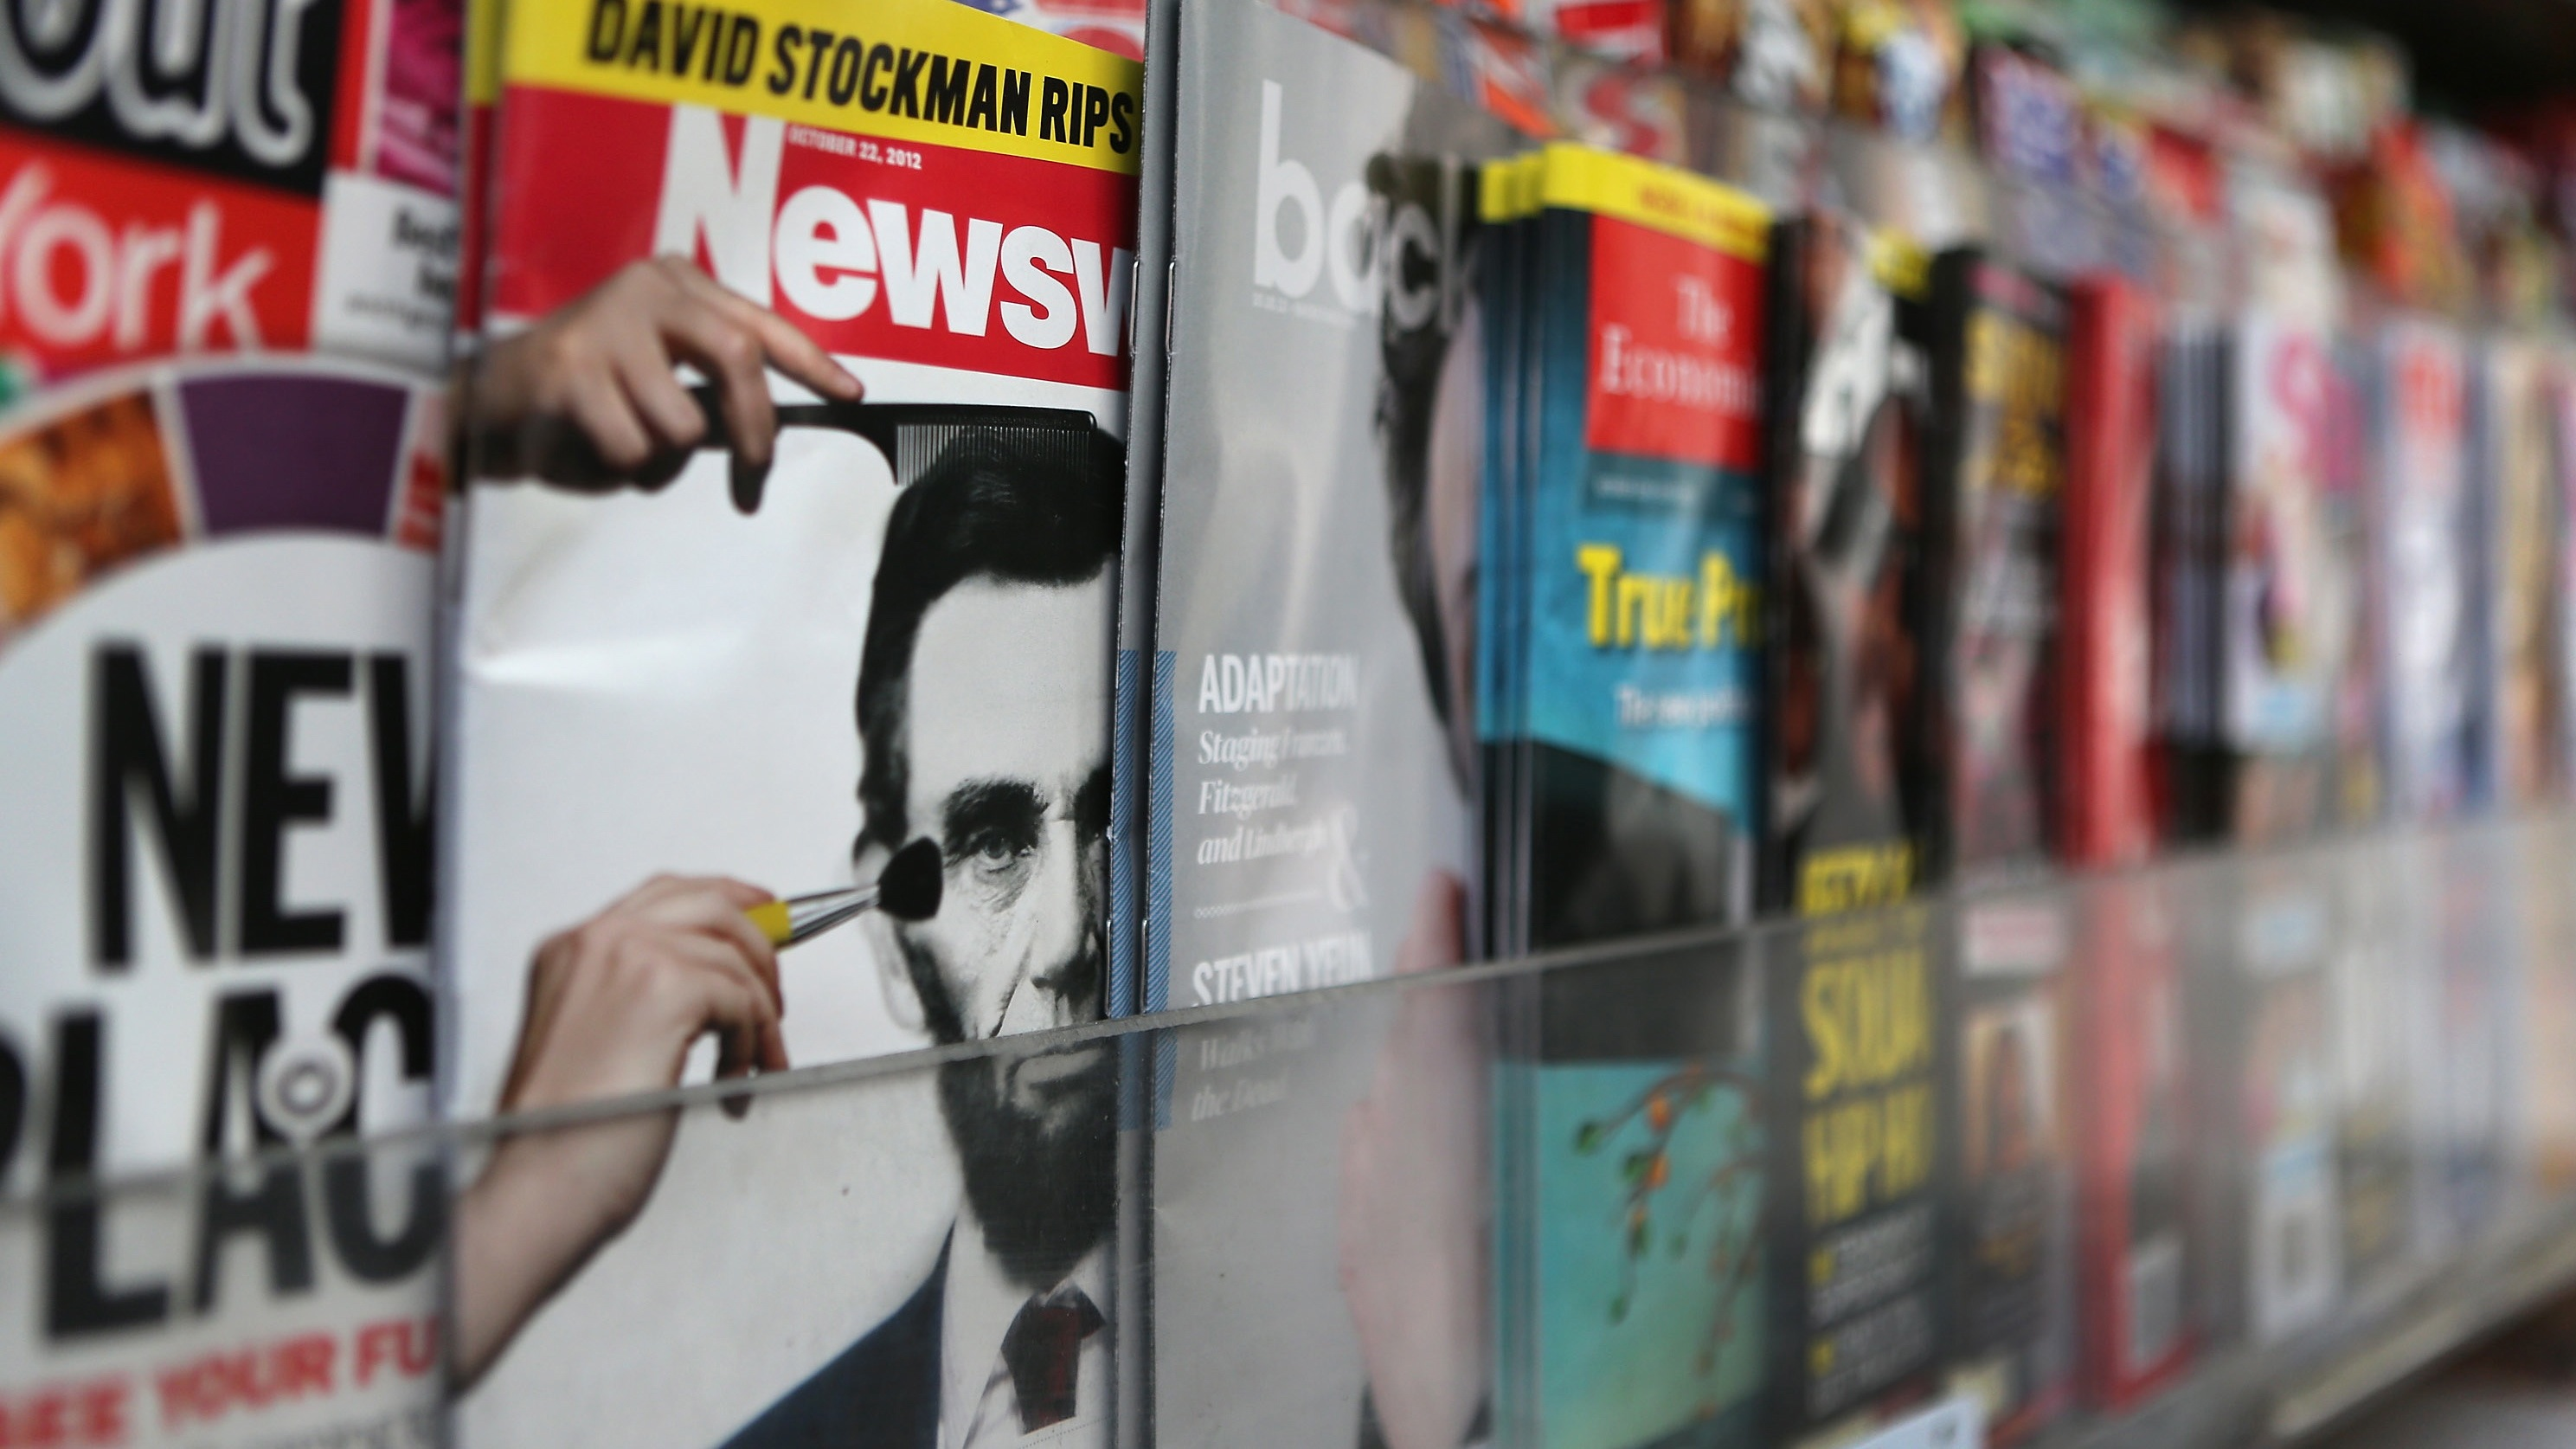 Limited edition: Newsweek's woes can't just be blamed on the internet.